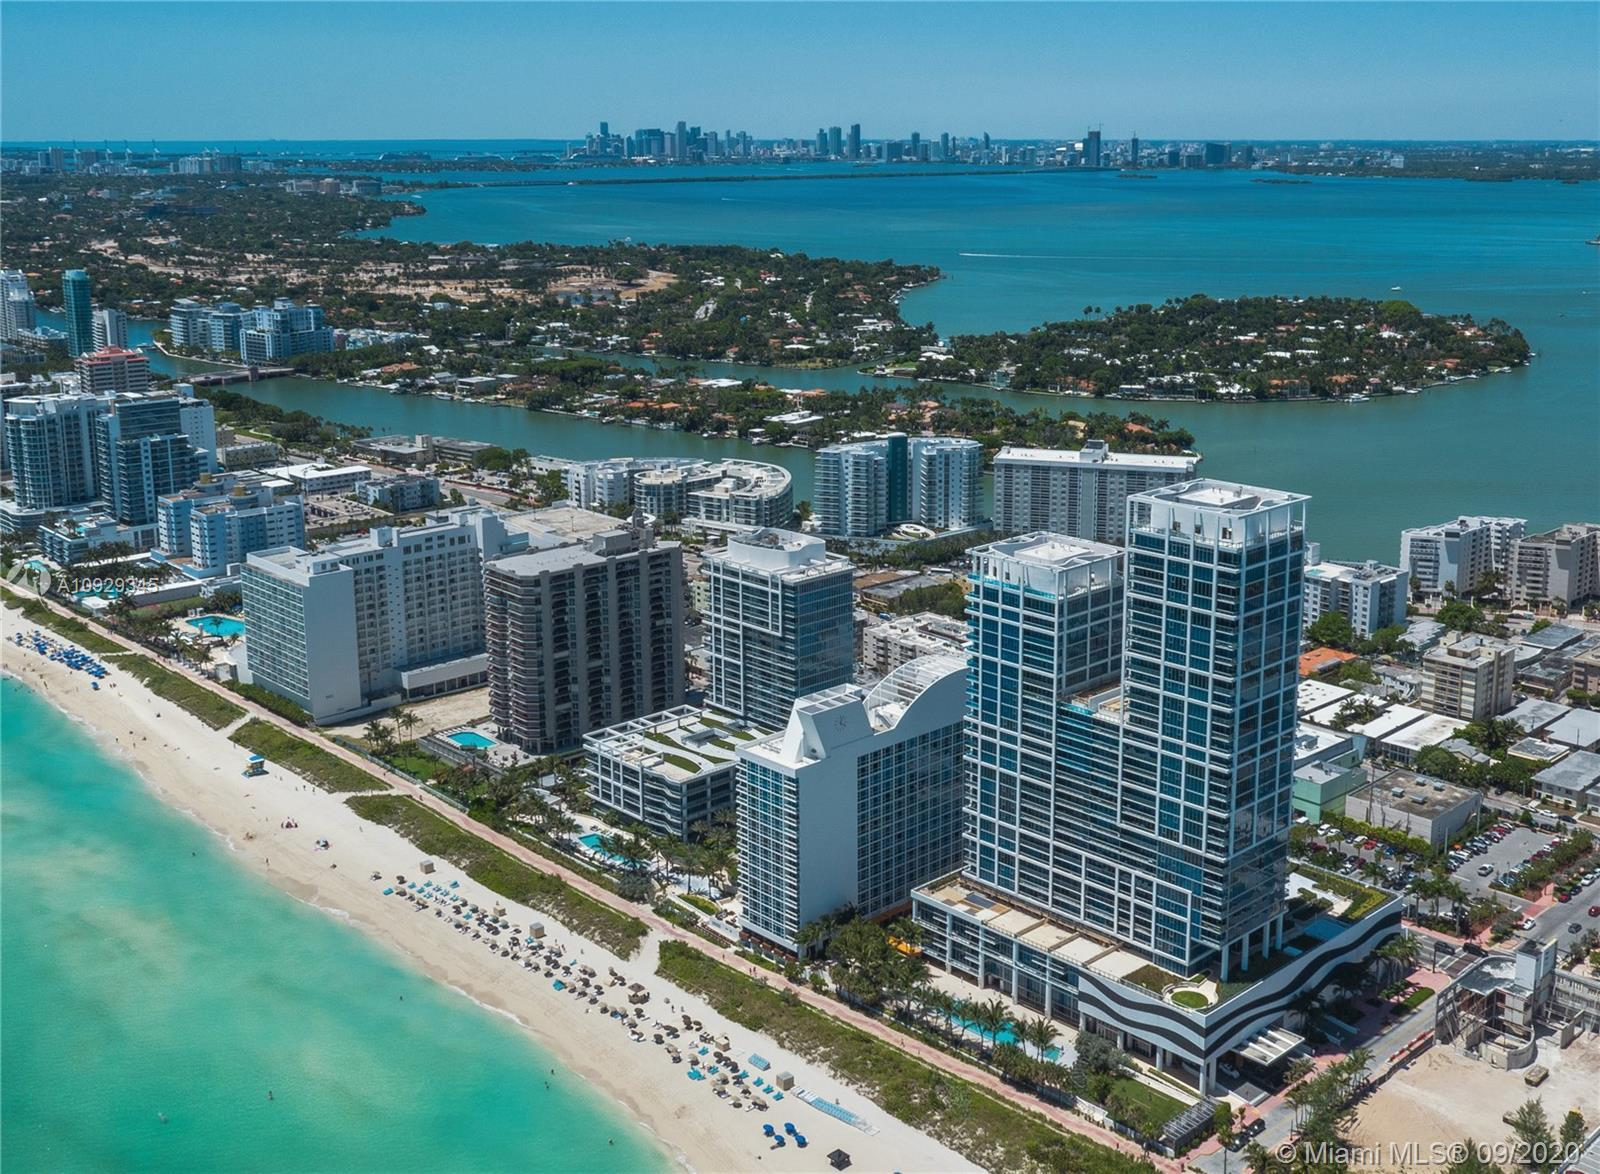 Enjoy every day to the fullest in this south-facing condo at the world-renowned Carillon Miami Welln